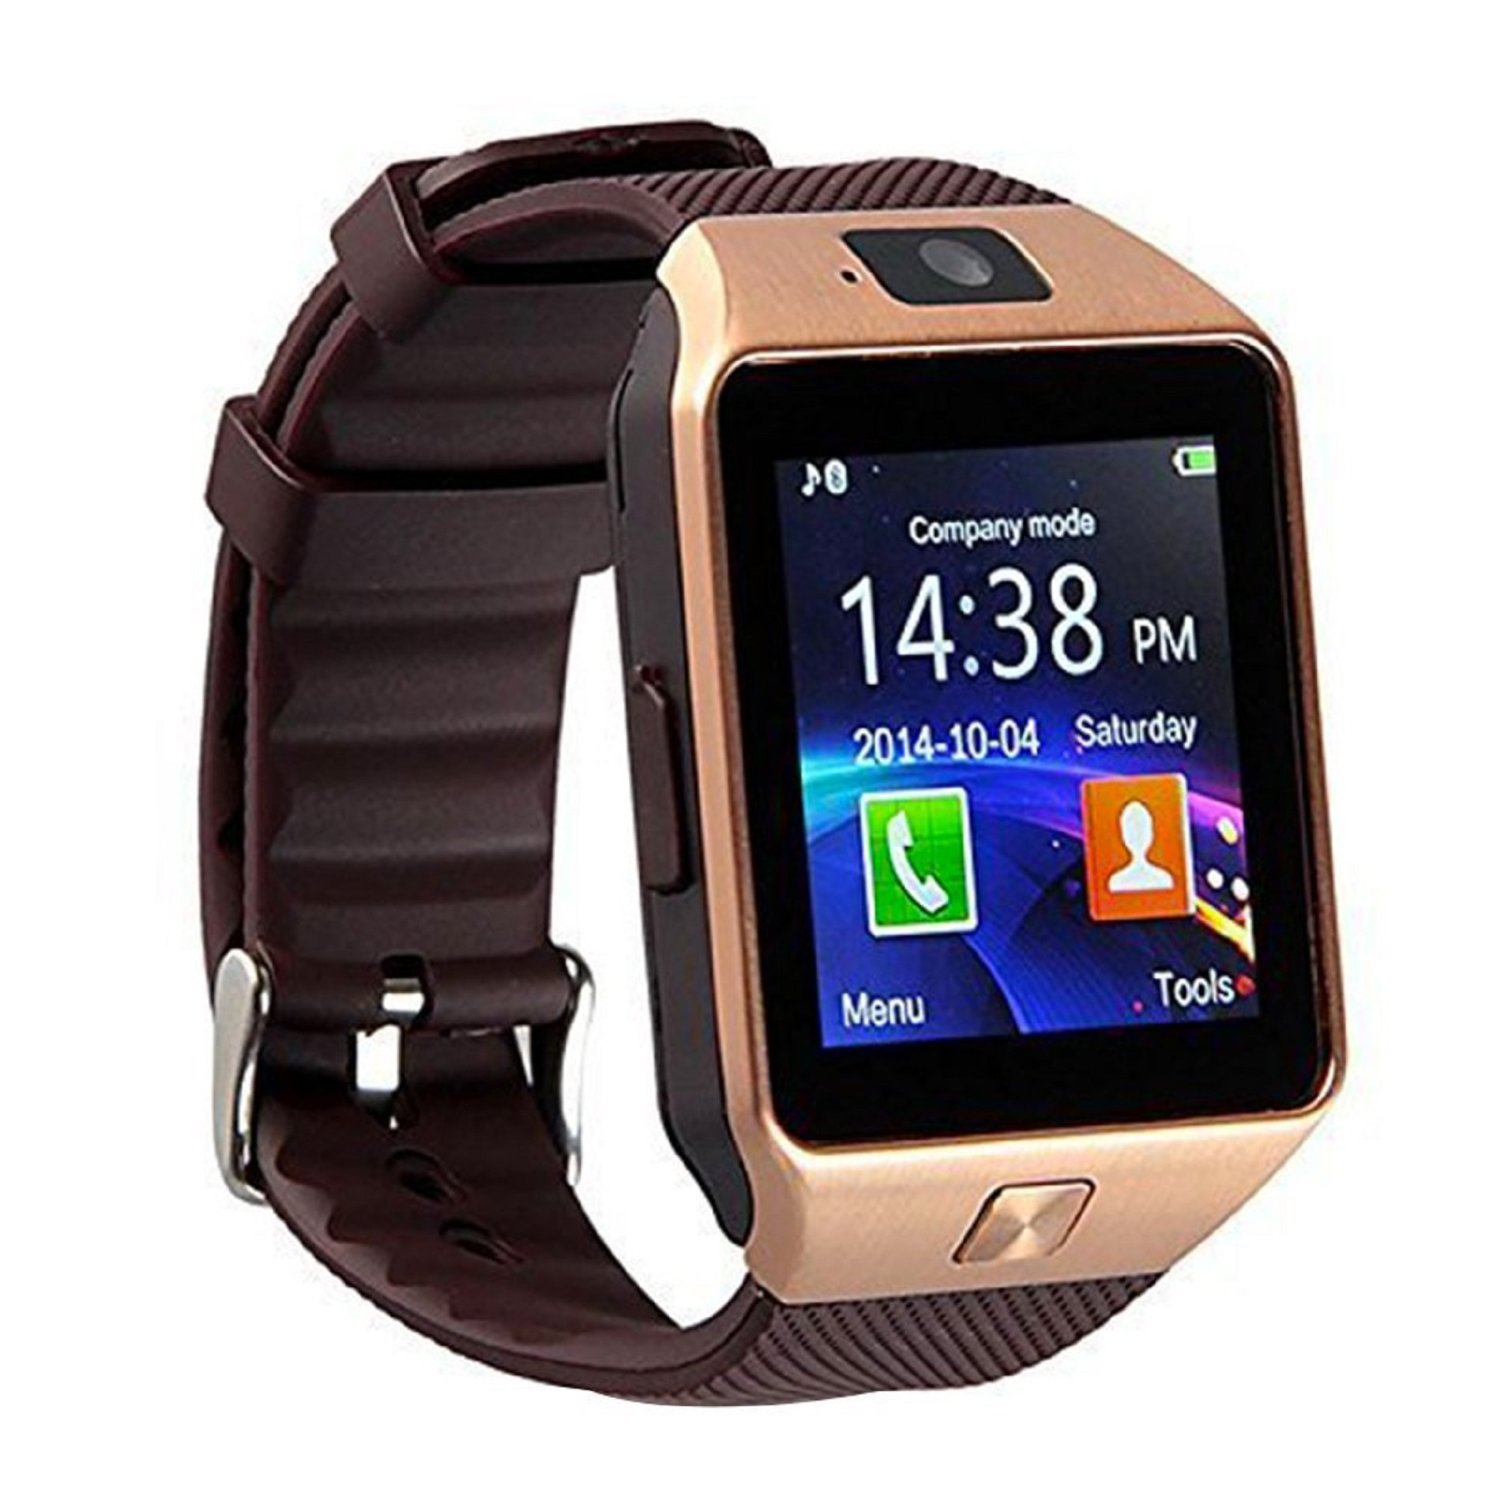 product black archives phones smart watches online samsung fit mauritius sm mobile in mu tablets gear category accessories shop phone galaxy